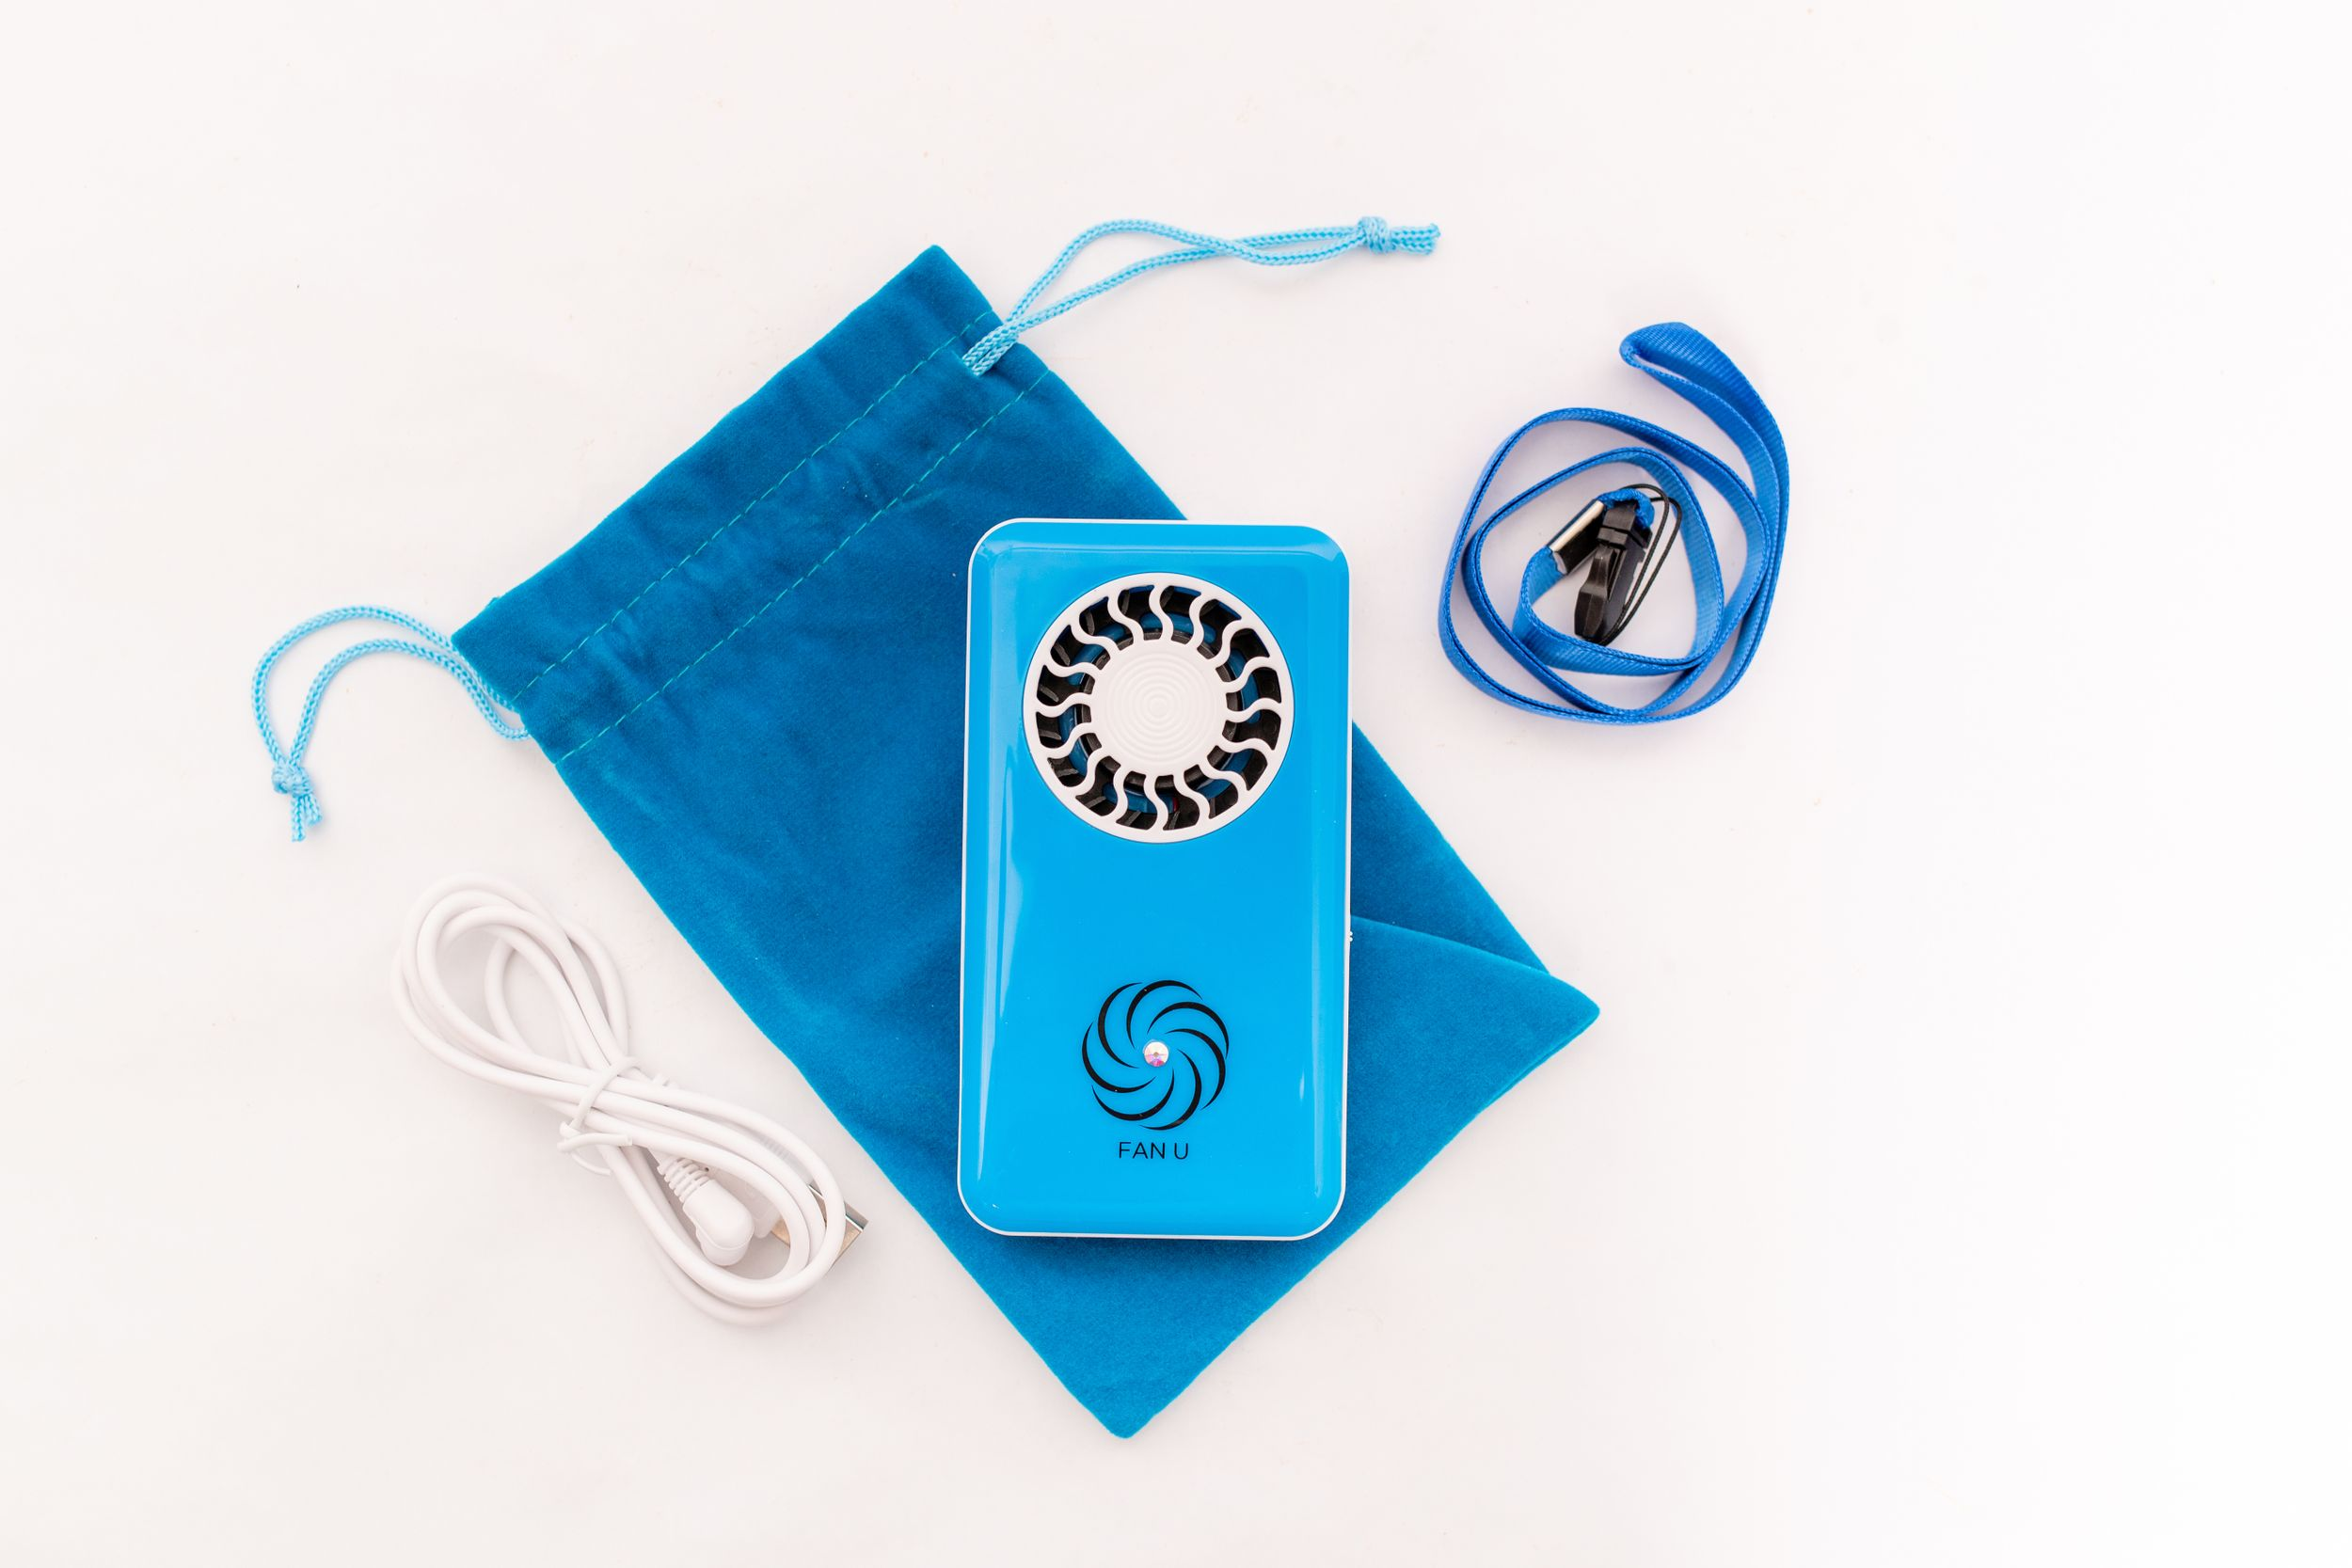 Blue electric fan with accessories and storage pouch - Product Photography